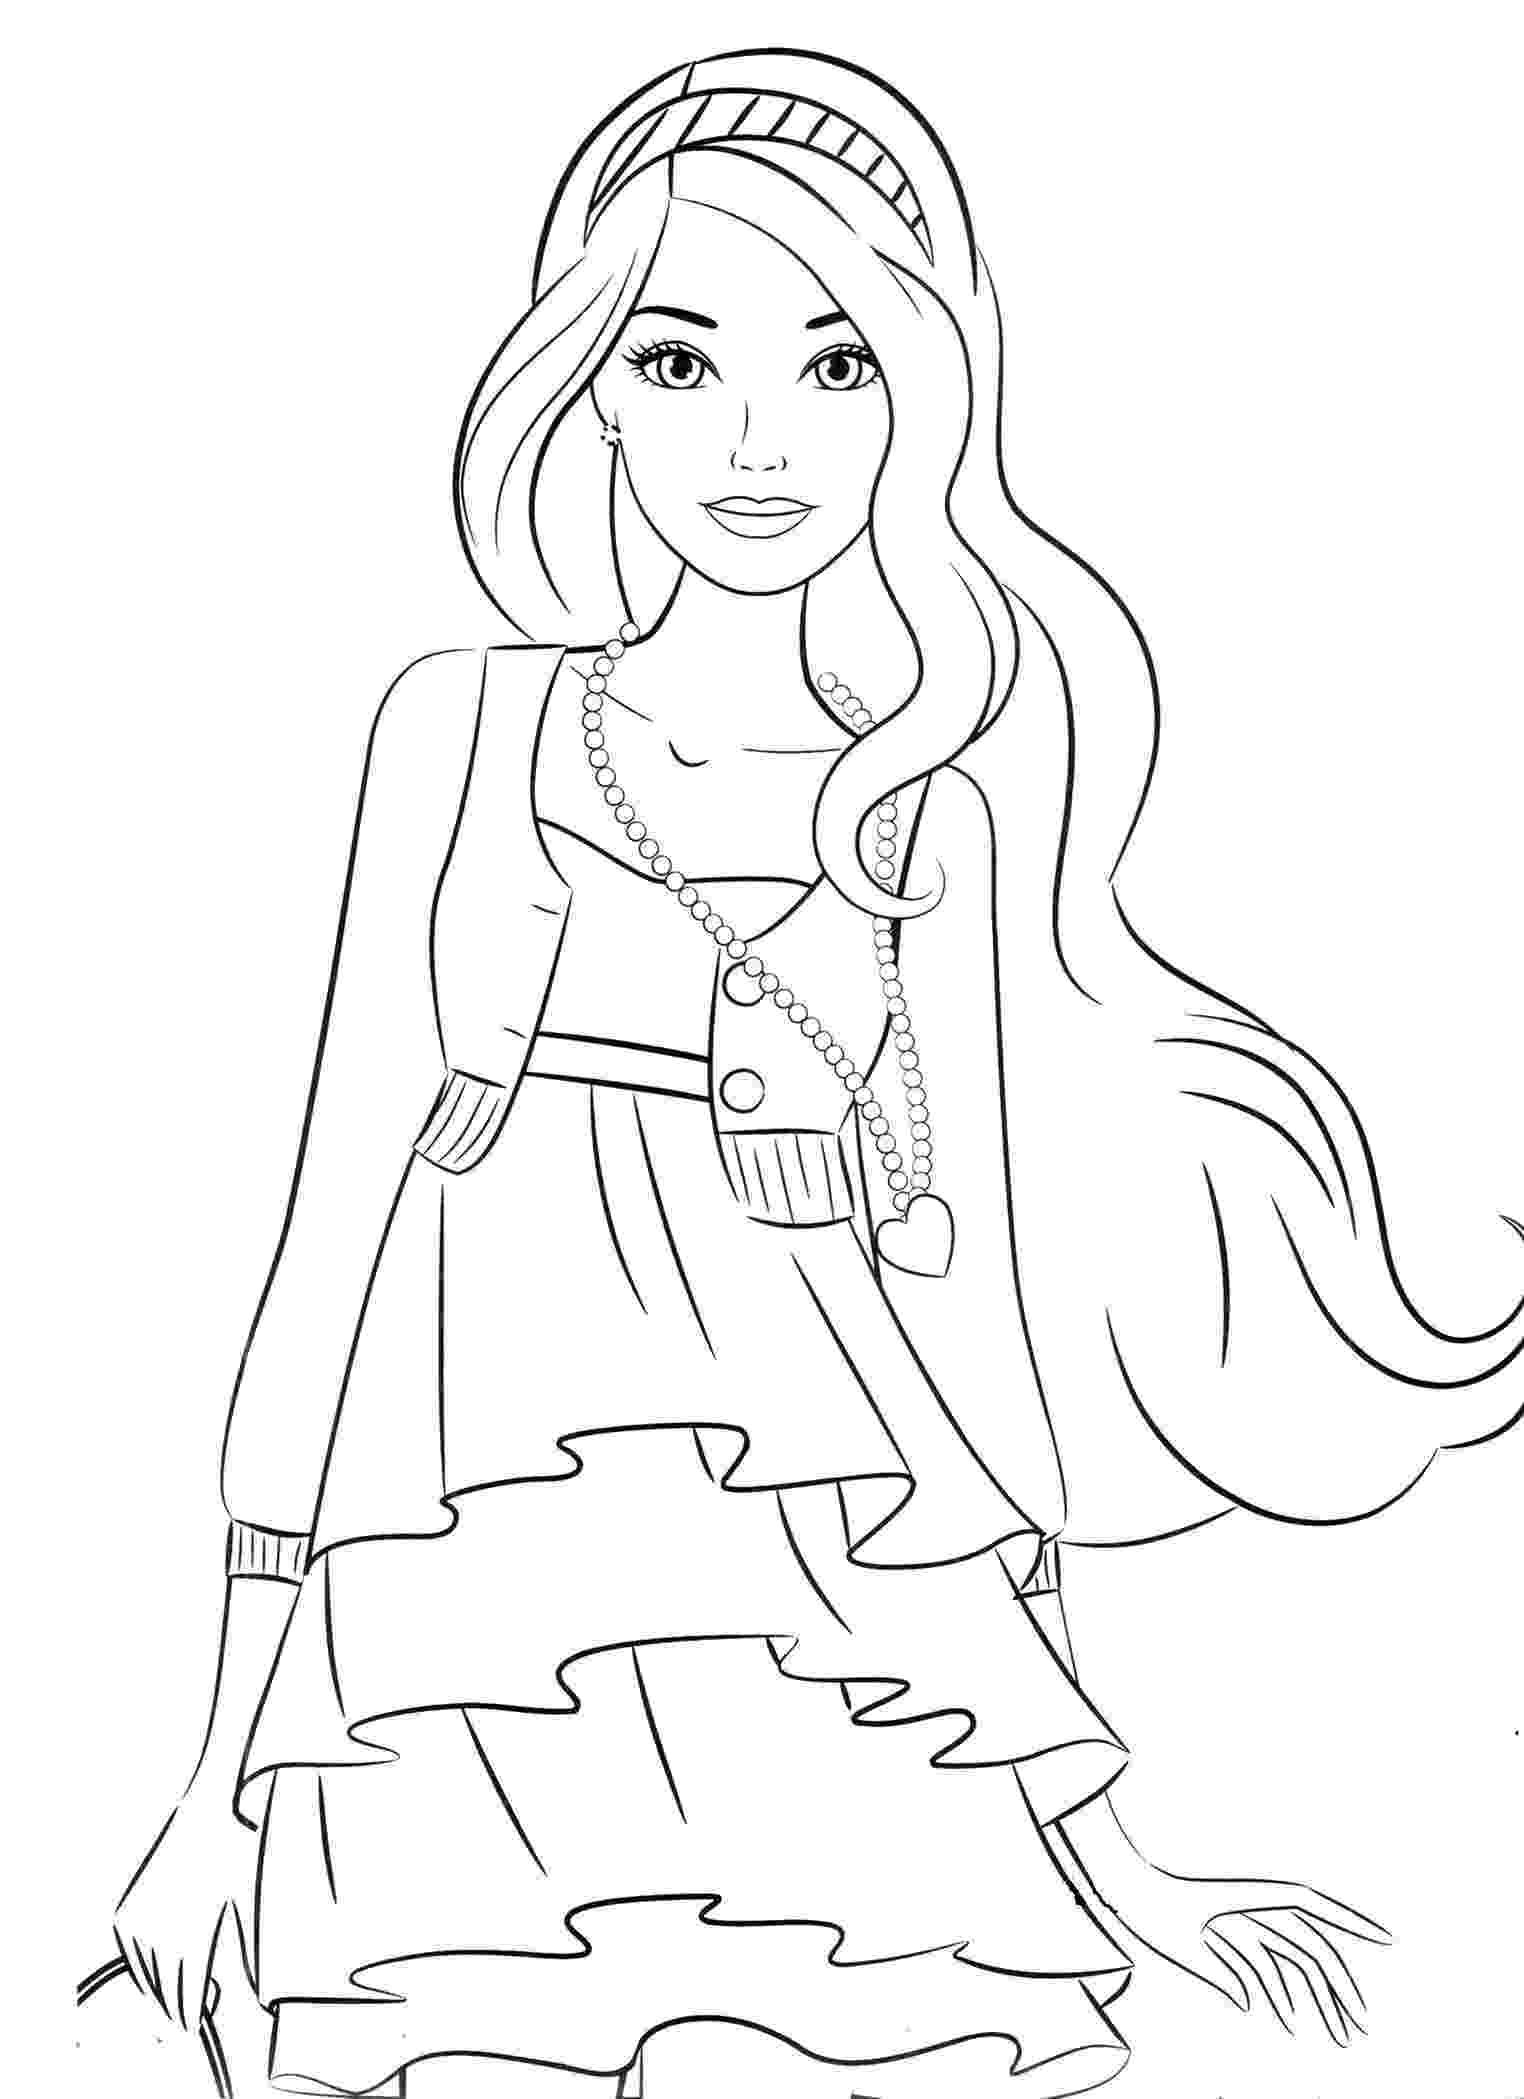 colouring pages to print for girls coloring pages for girls 9 coloring kids colouring to pages girls print for